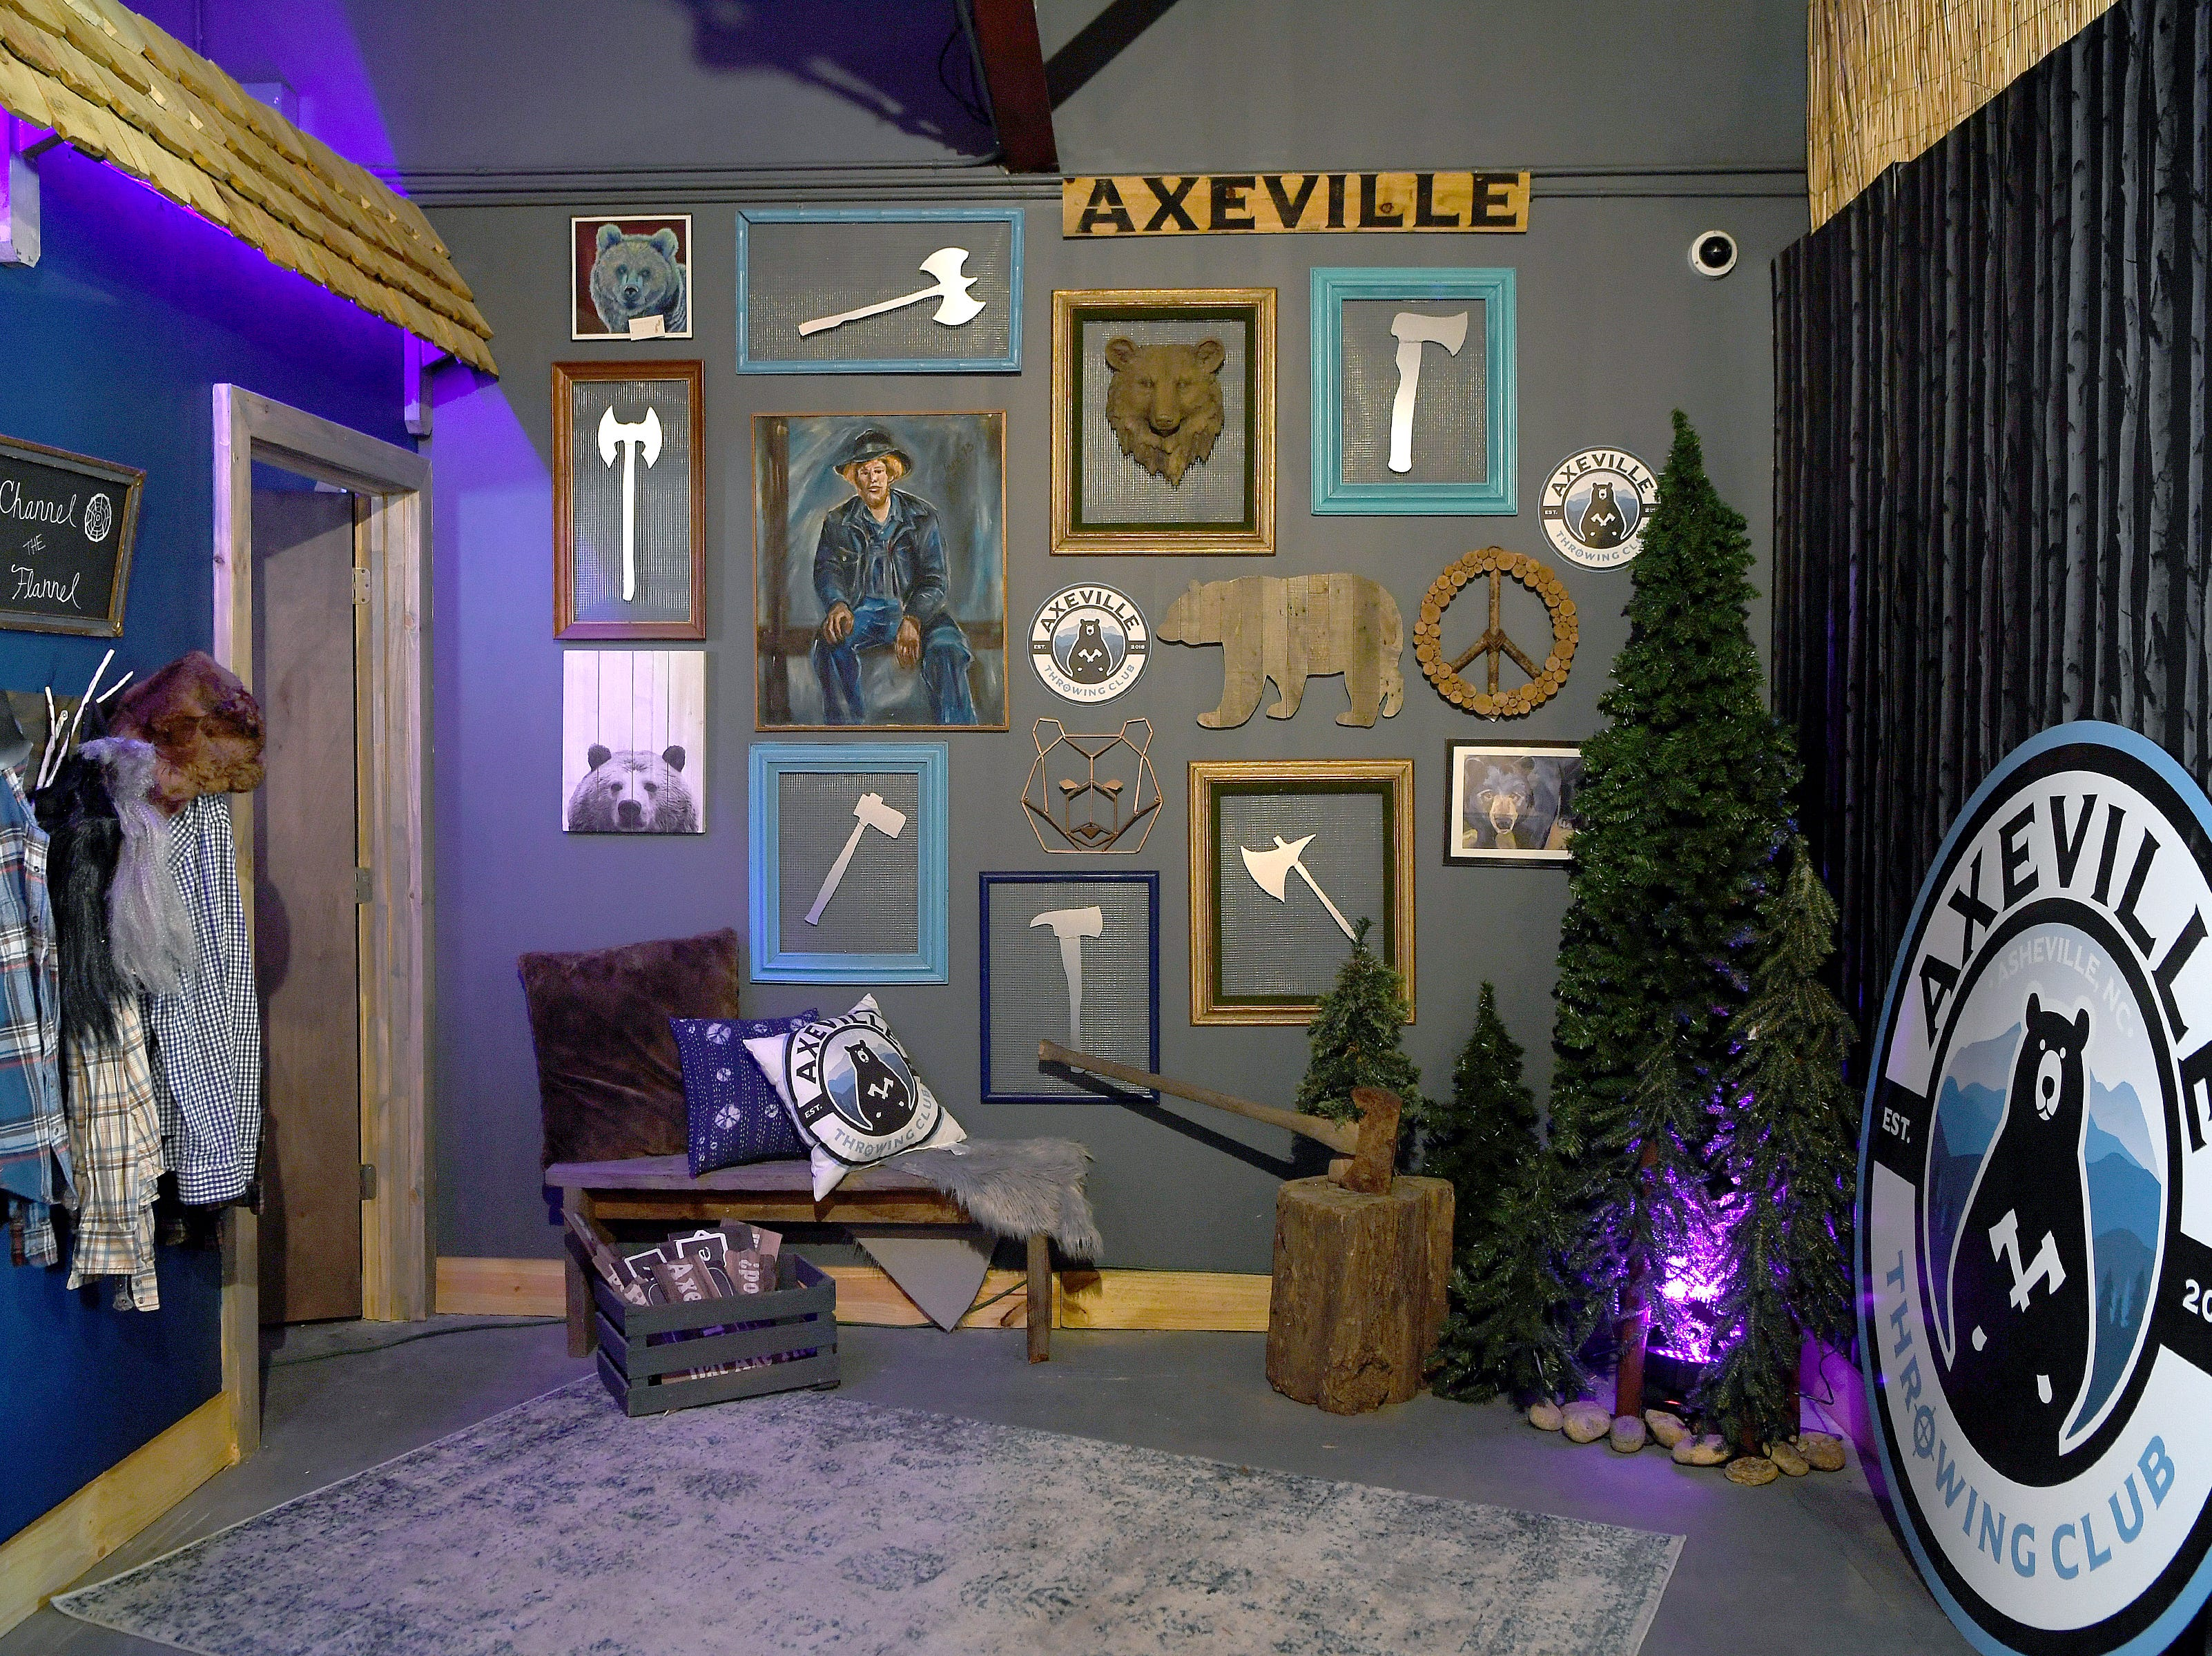 A photo-taking area at Axeville Throwing Club, Asheville's first ax throwing facility, adds to the overall vibe of the club which is planning to open to the public in March.